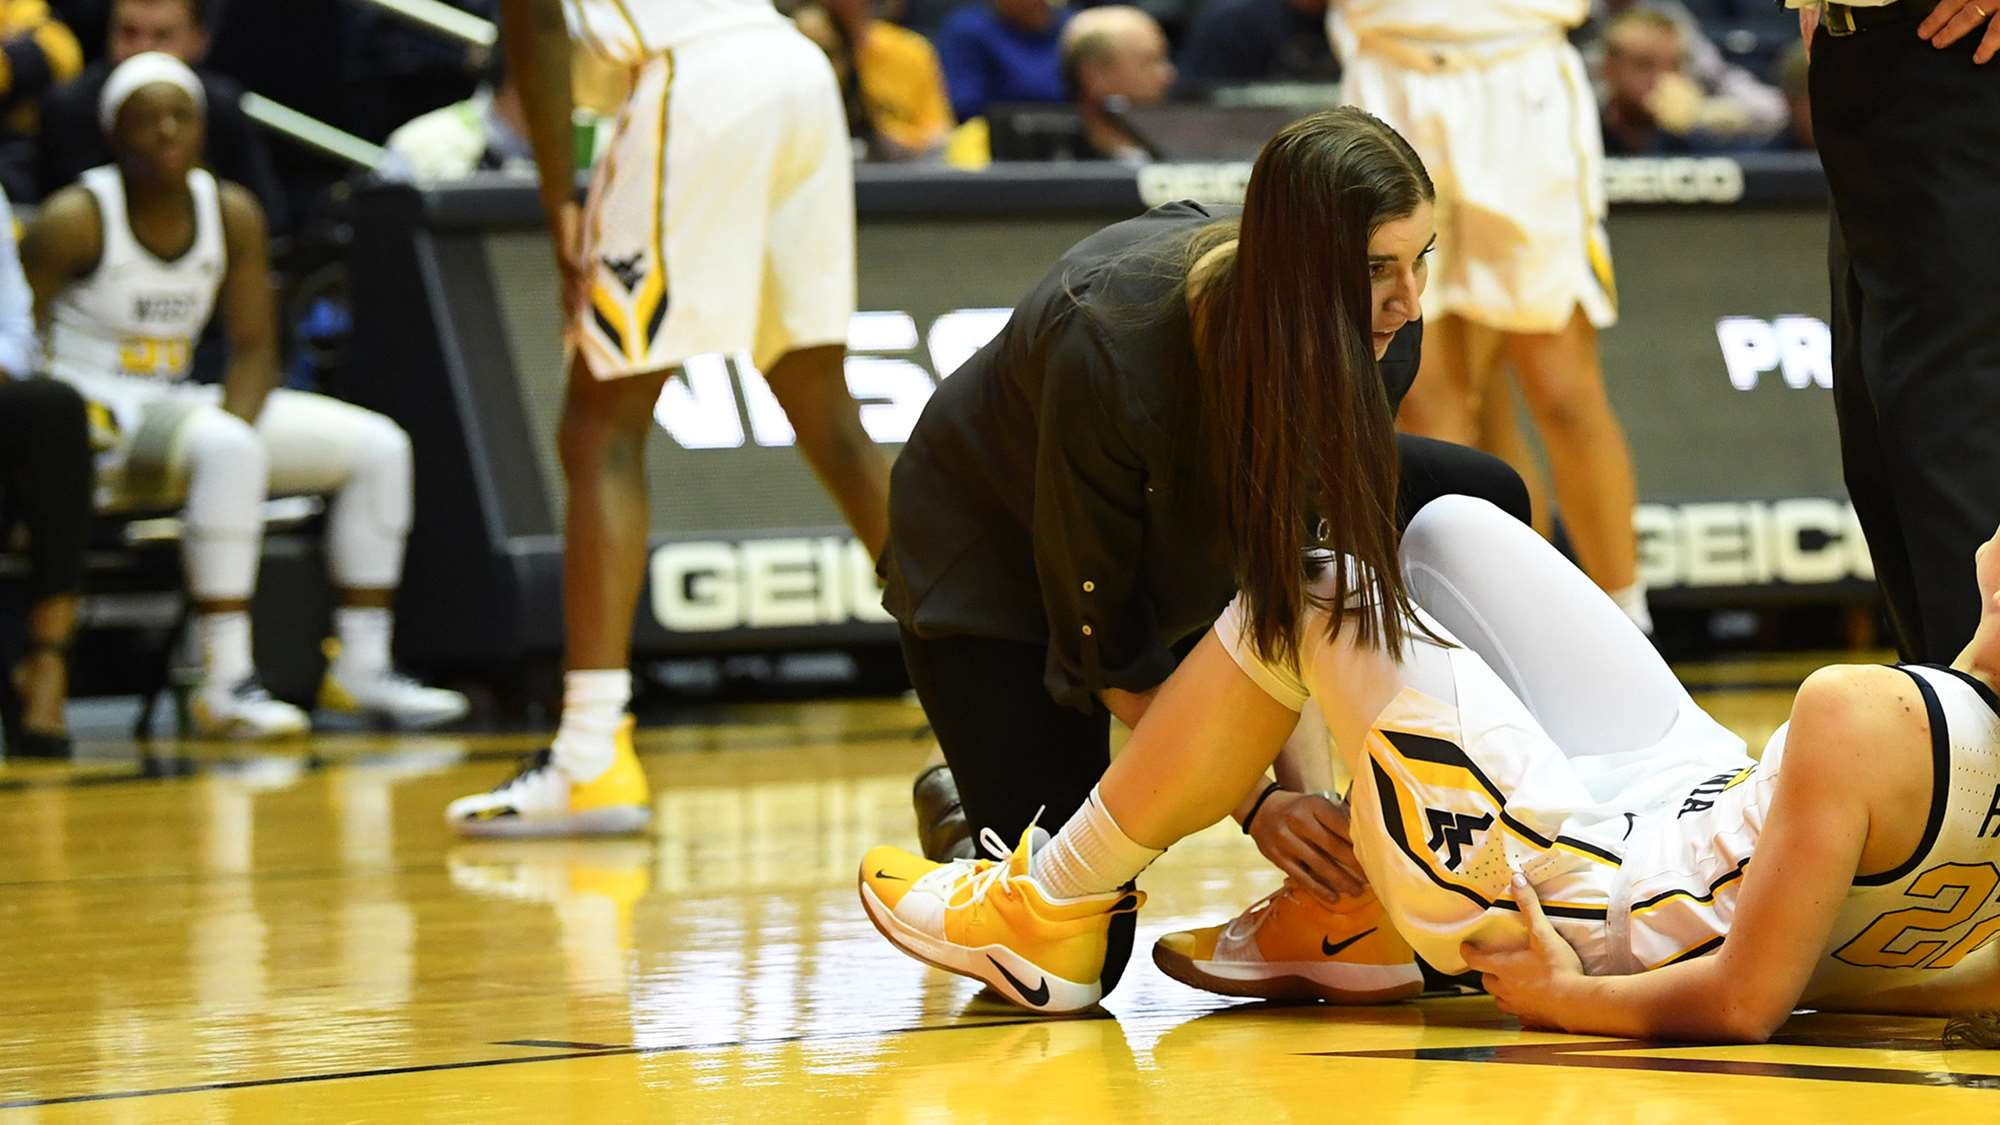 Athletic trainer tends to basketball player on court.